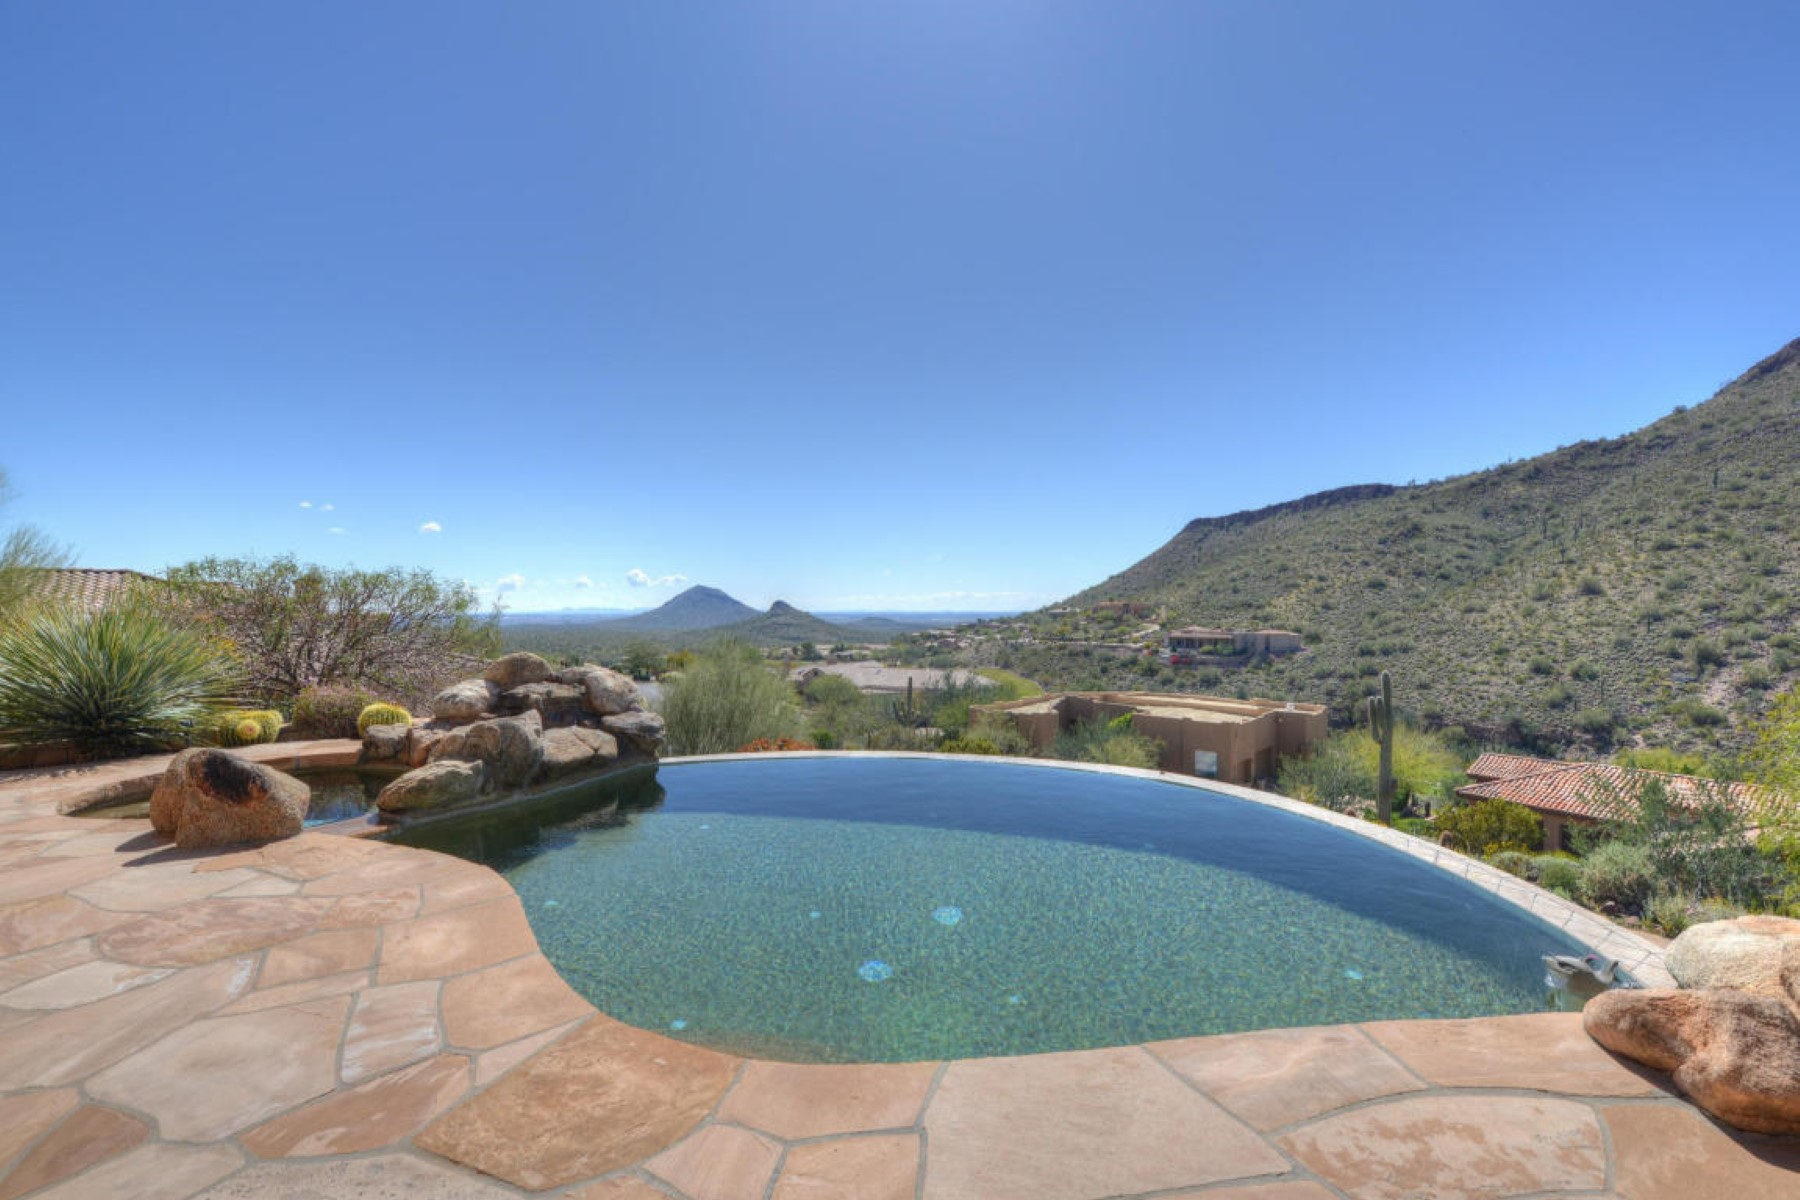 Single Family Home for Sale at Elegant, exclusive, and perched for privacy 9635 N SOLITUDE CYN Fountain Hills, Arizona, 85268 United States